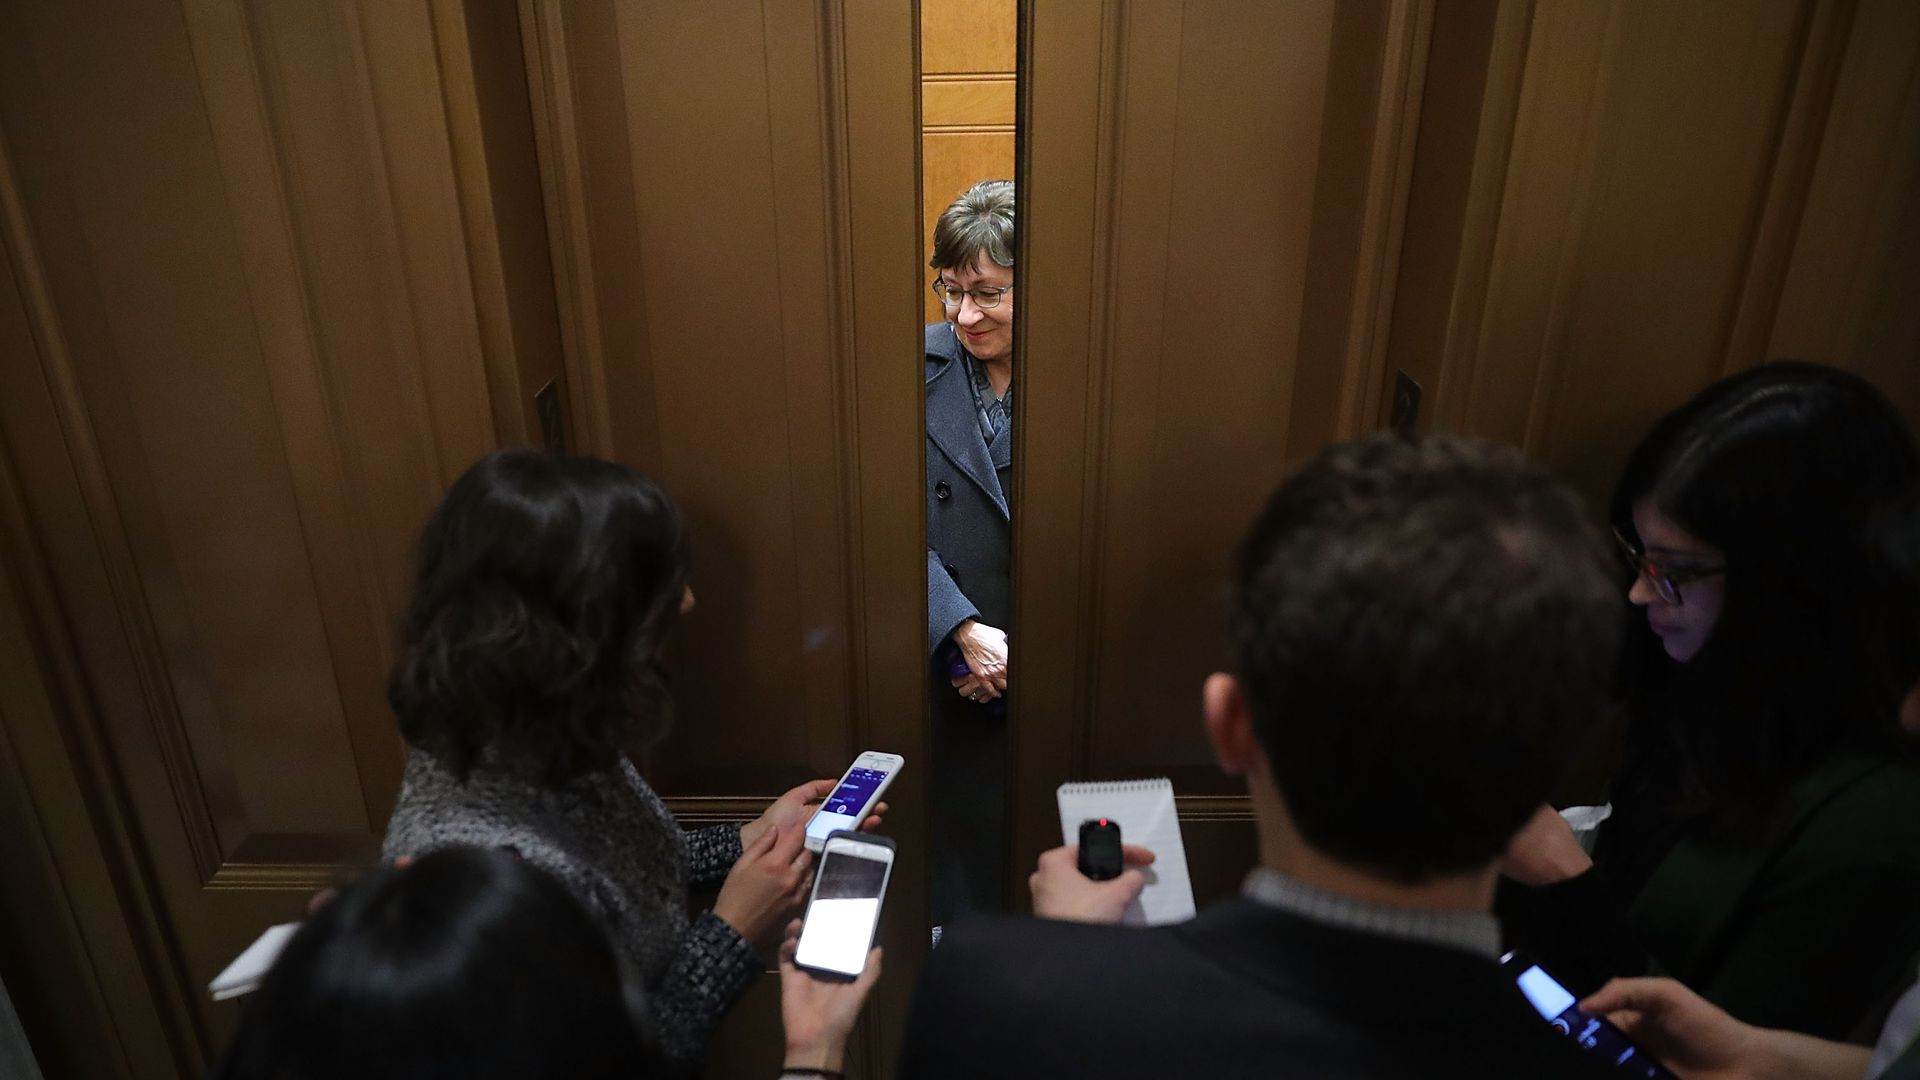 Susan Collins with elevator doors closing on her and reporters holding out recorders